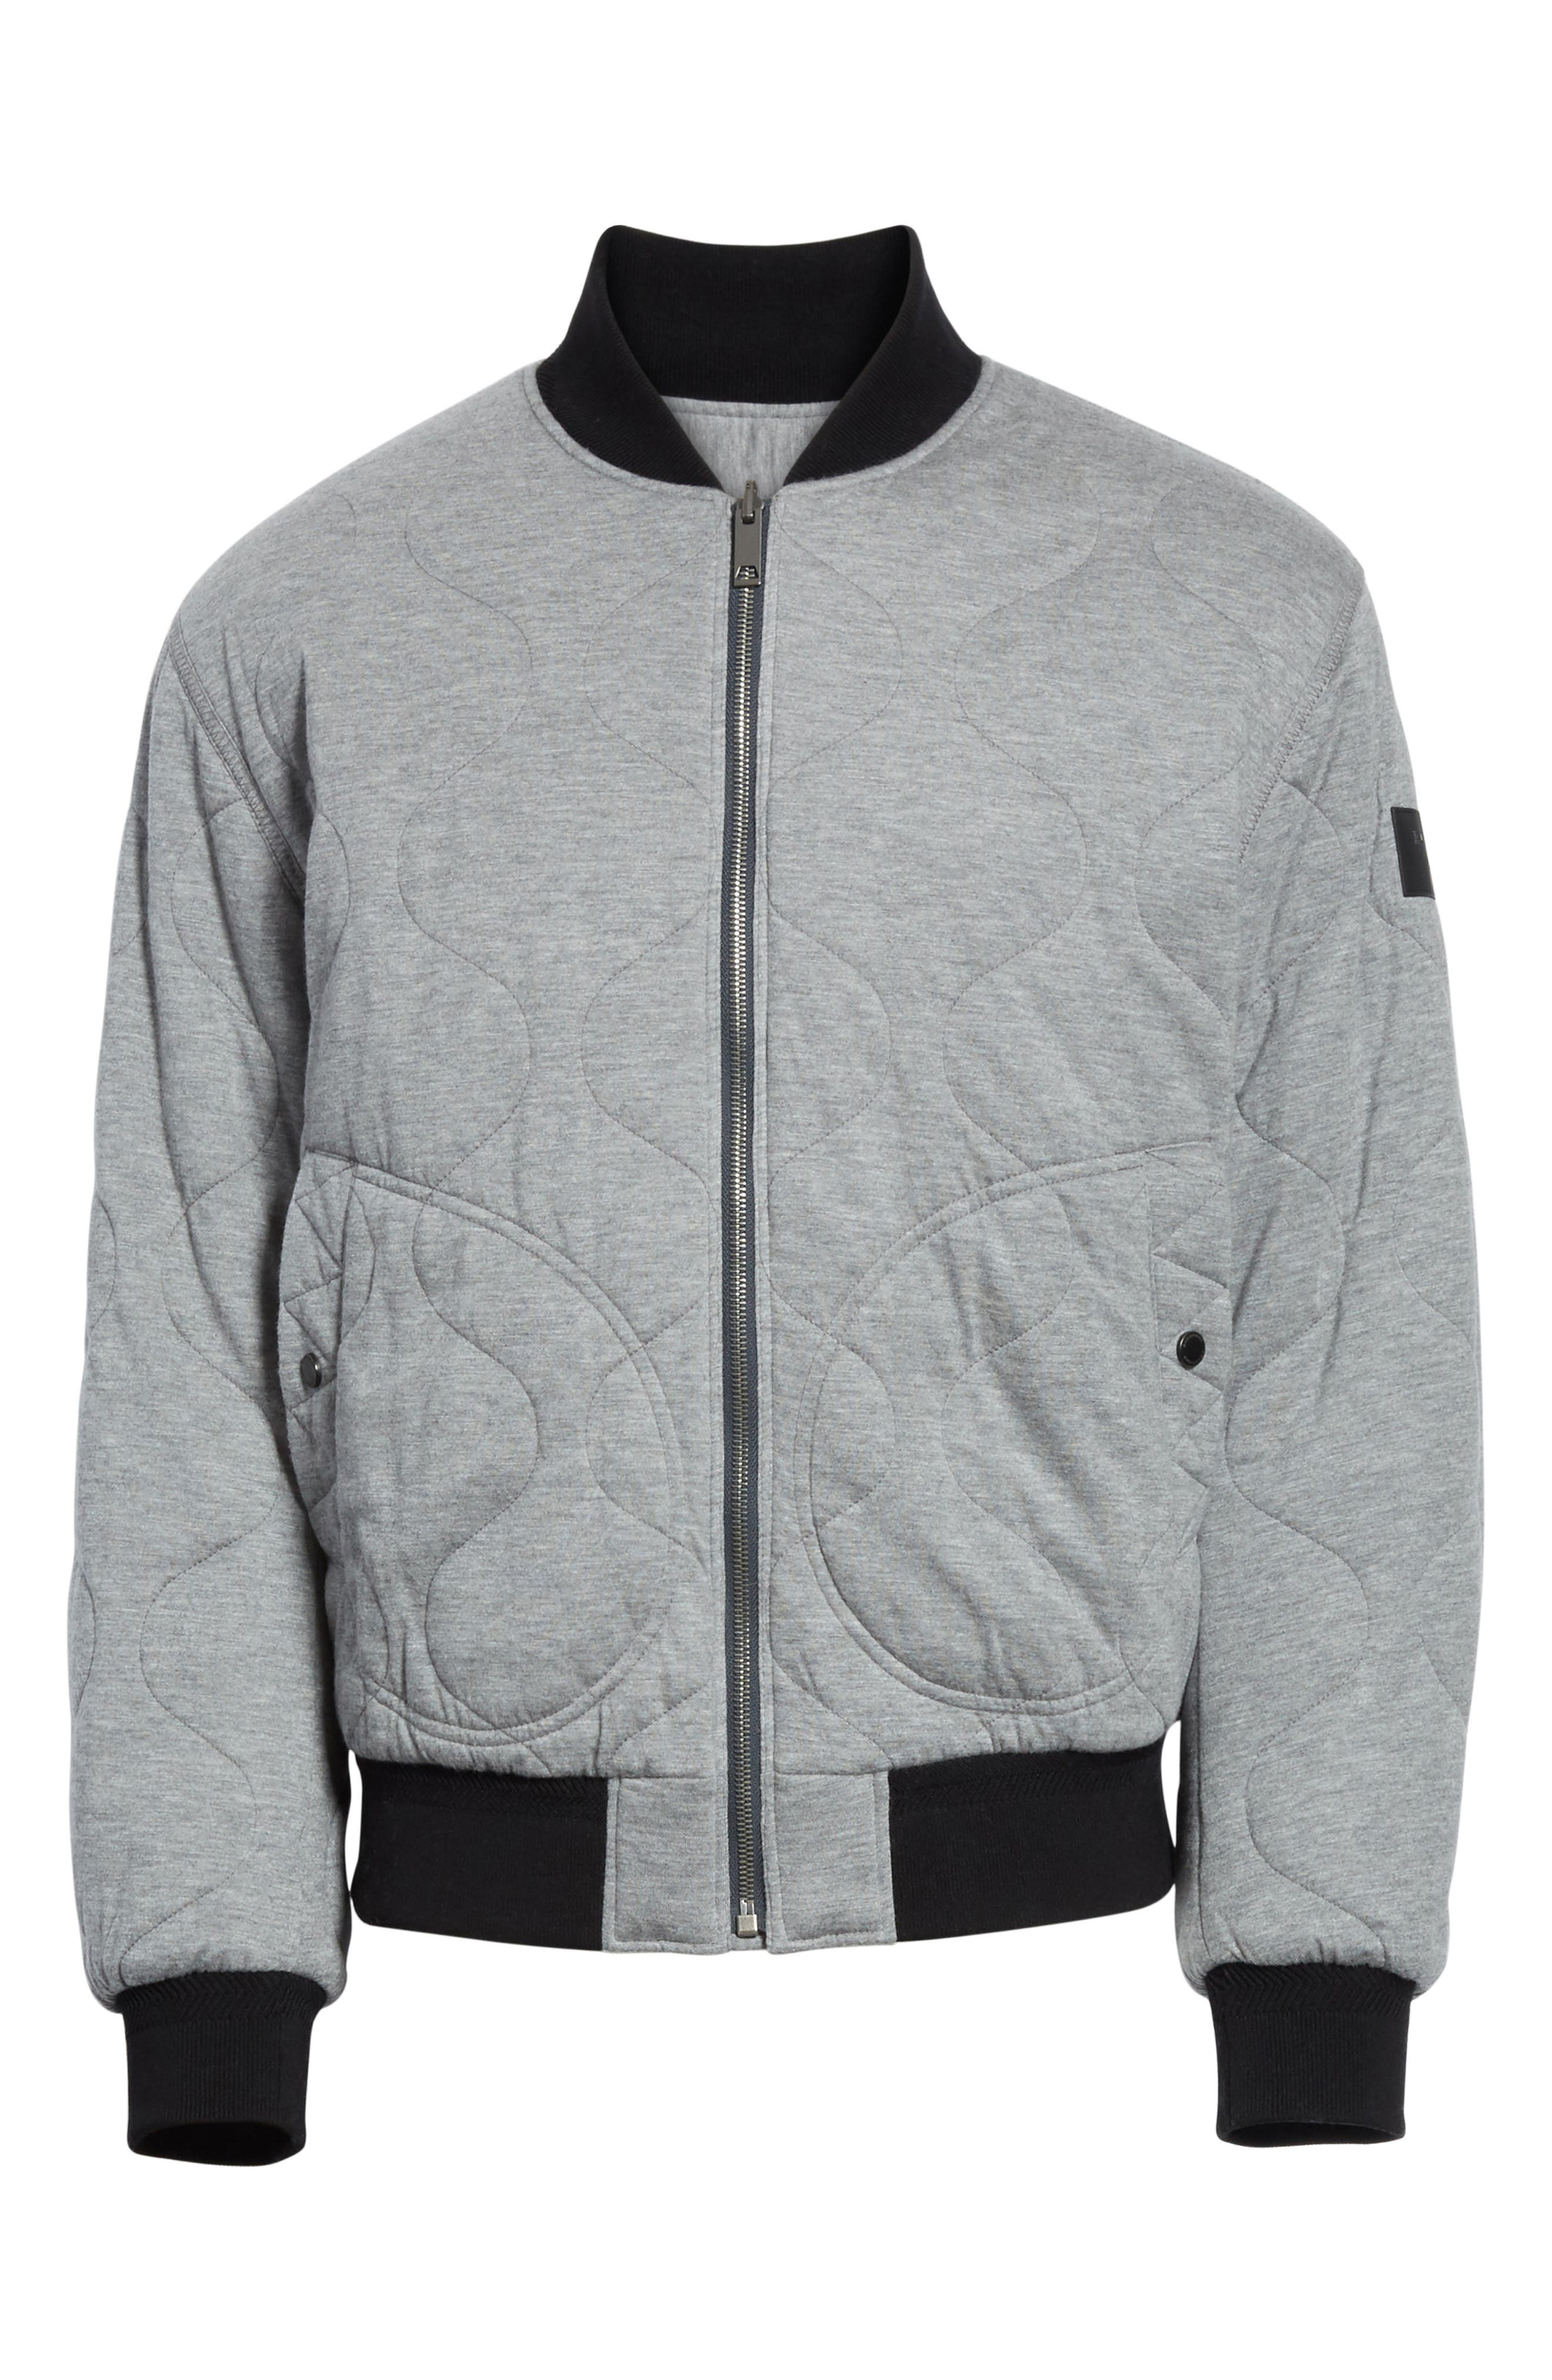 Campton Reversible Quilted Jersey Bomber Jacket,                             Alternate thumbnail 6, color,                             031